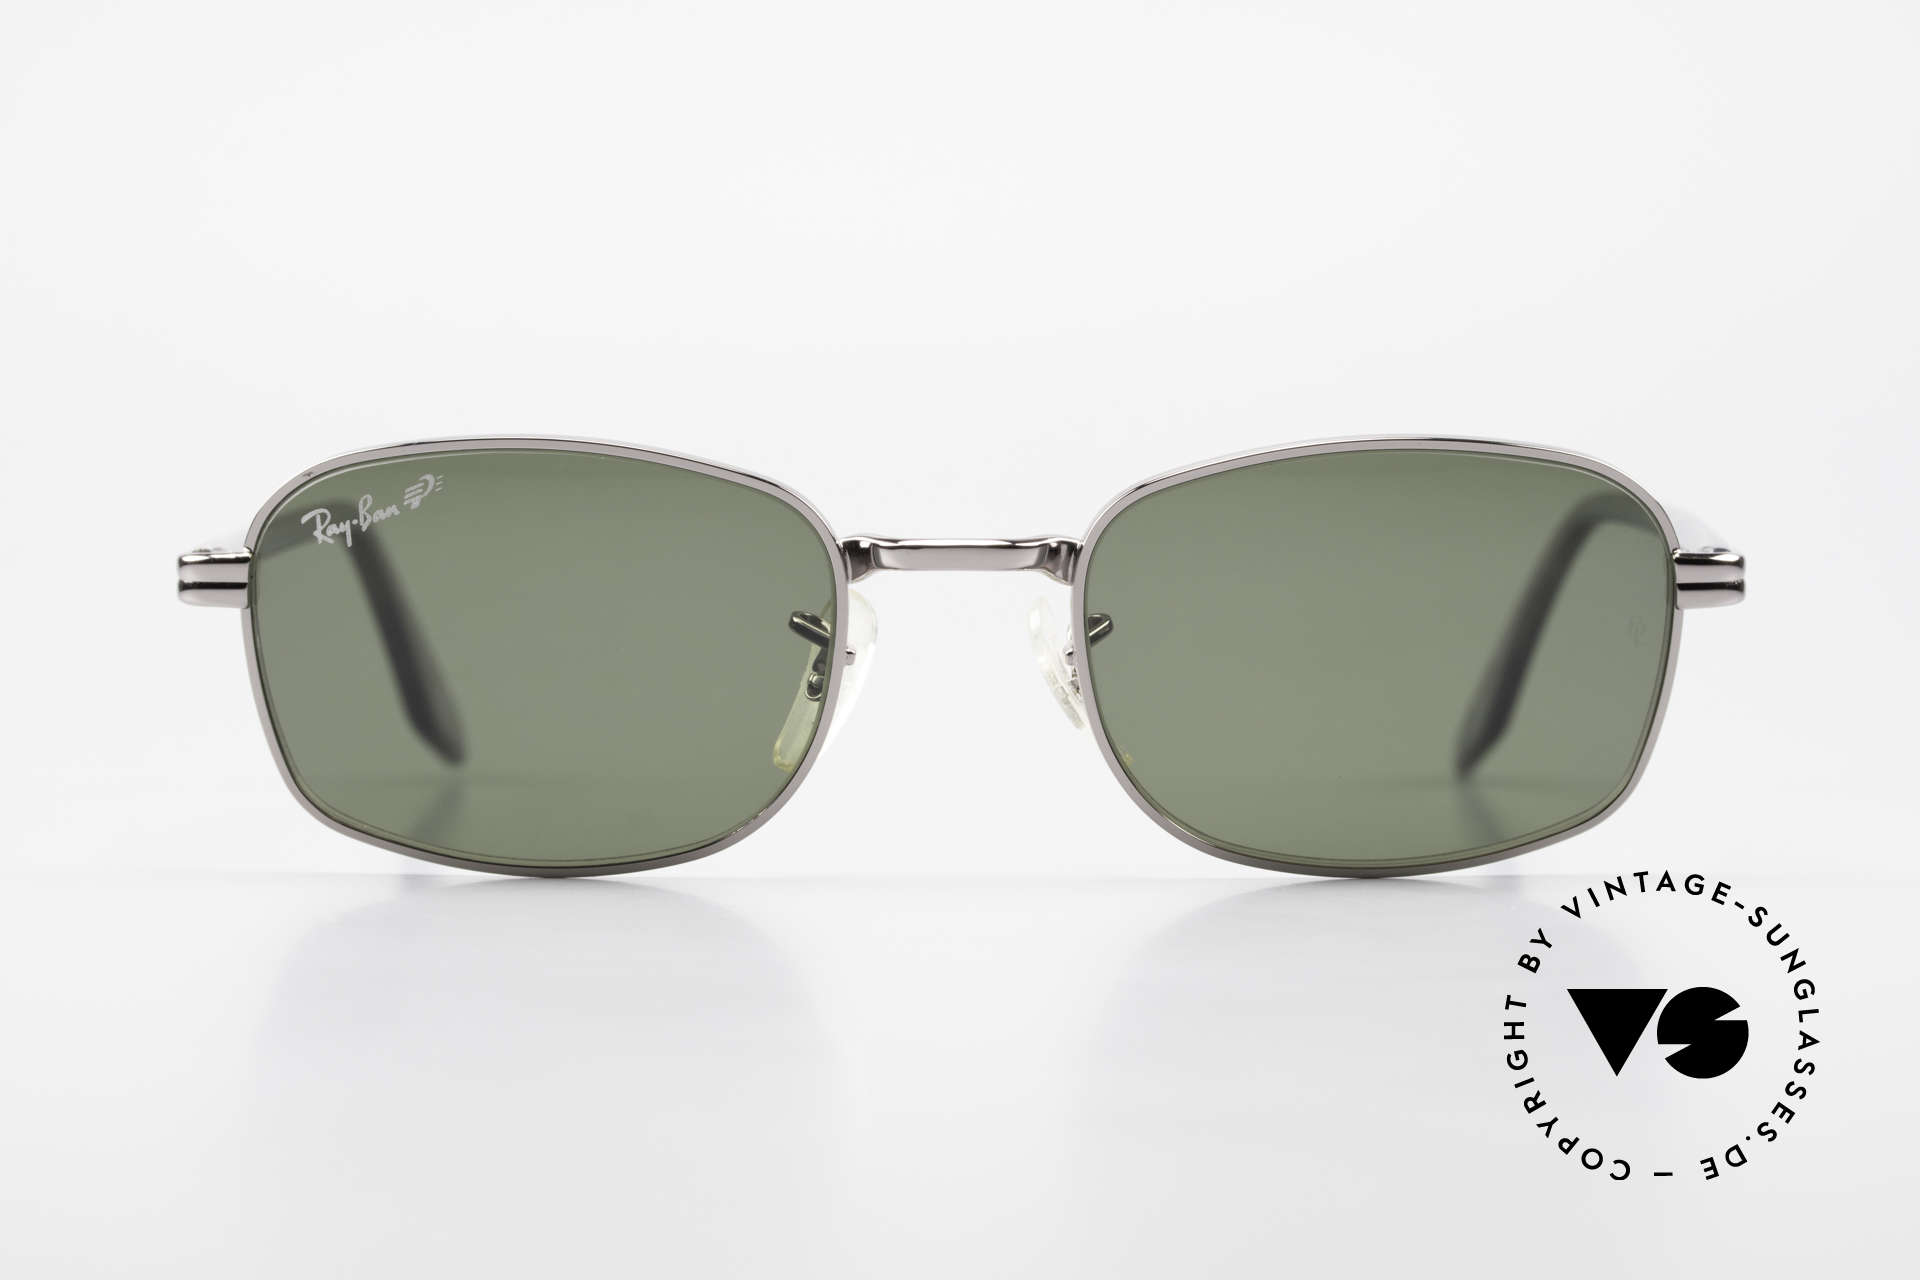 Ray Ban Sidestreet Crosswalk Square Polarized B&L Shades, one of the last models made by Bausch&Lomb, U.S.A., Made for Men